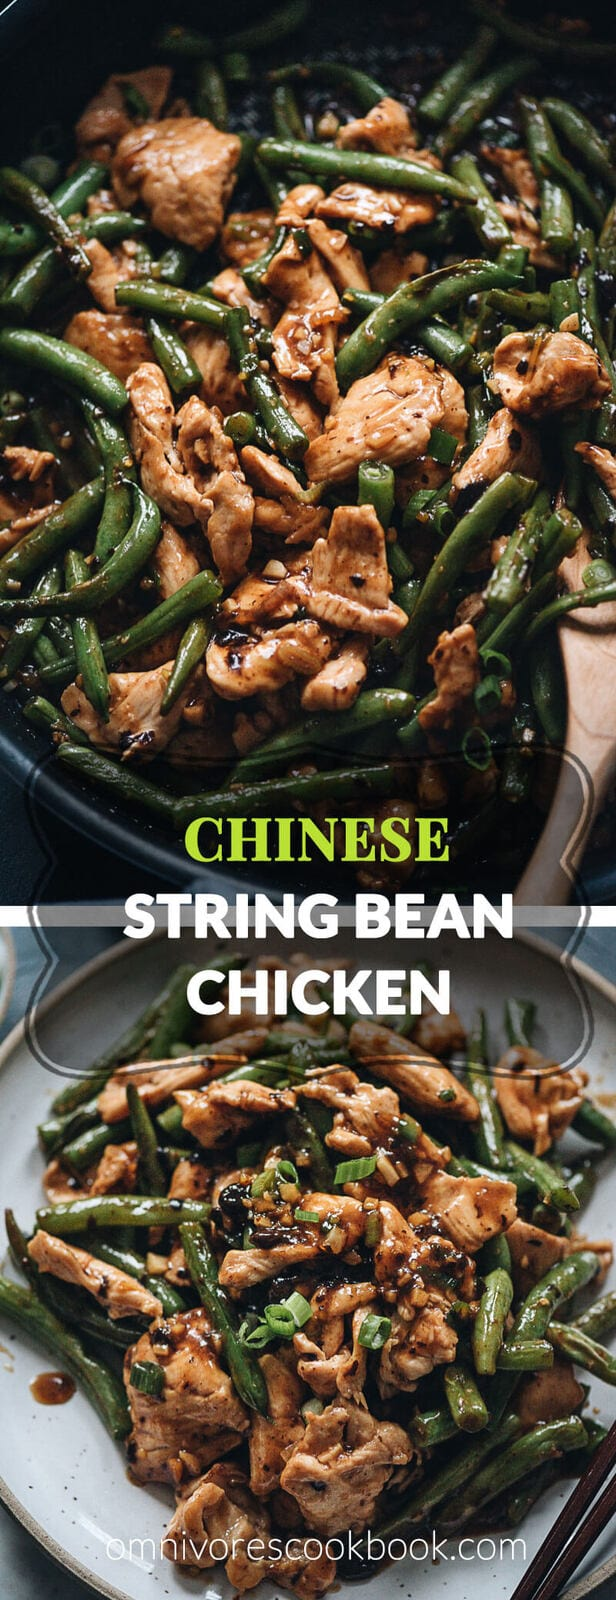 String bean chicken - This takeout string bean chicken is so easy to make and perfect for a weekday dinner. The juicy chicken is seared in a fragrant black bean sauce with tender green beans. The recipe yields extra sauce so you can serve it on rice to make a delicious one-bowl meal. {Gluten-Free adaptable}